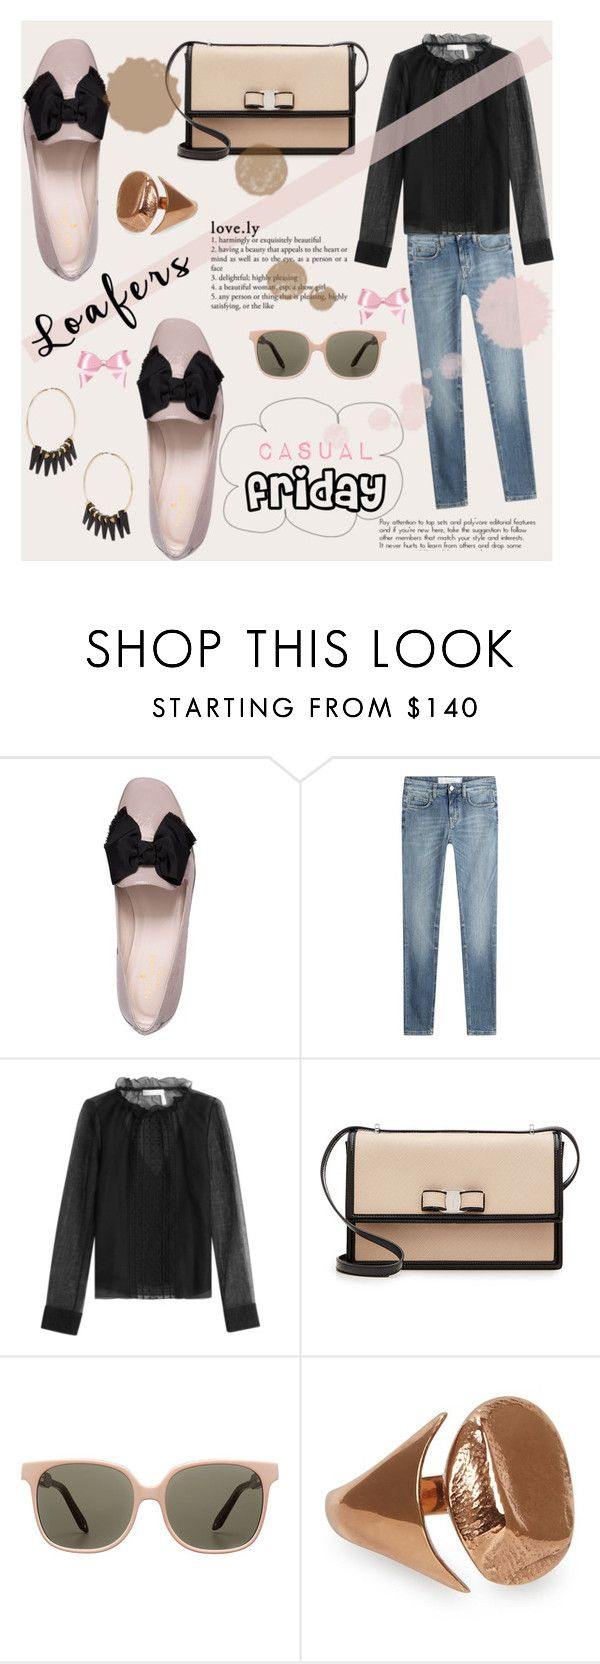 """""""casual friday loafers"""" by joliedy ❤ liked on Polyvore featuring Kate Spade, Victoria, Victoria Beckham, See by Chloé, Salvatore Ferragamo, Victoria Beckham, Cornelia Webb and Alice Menter"""